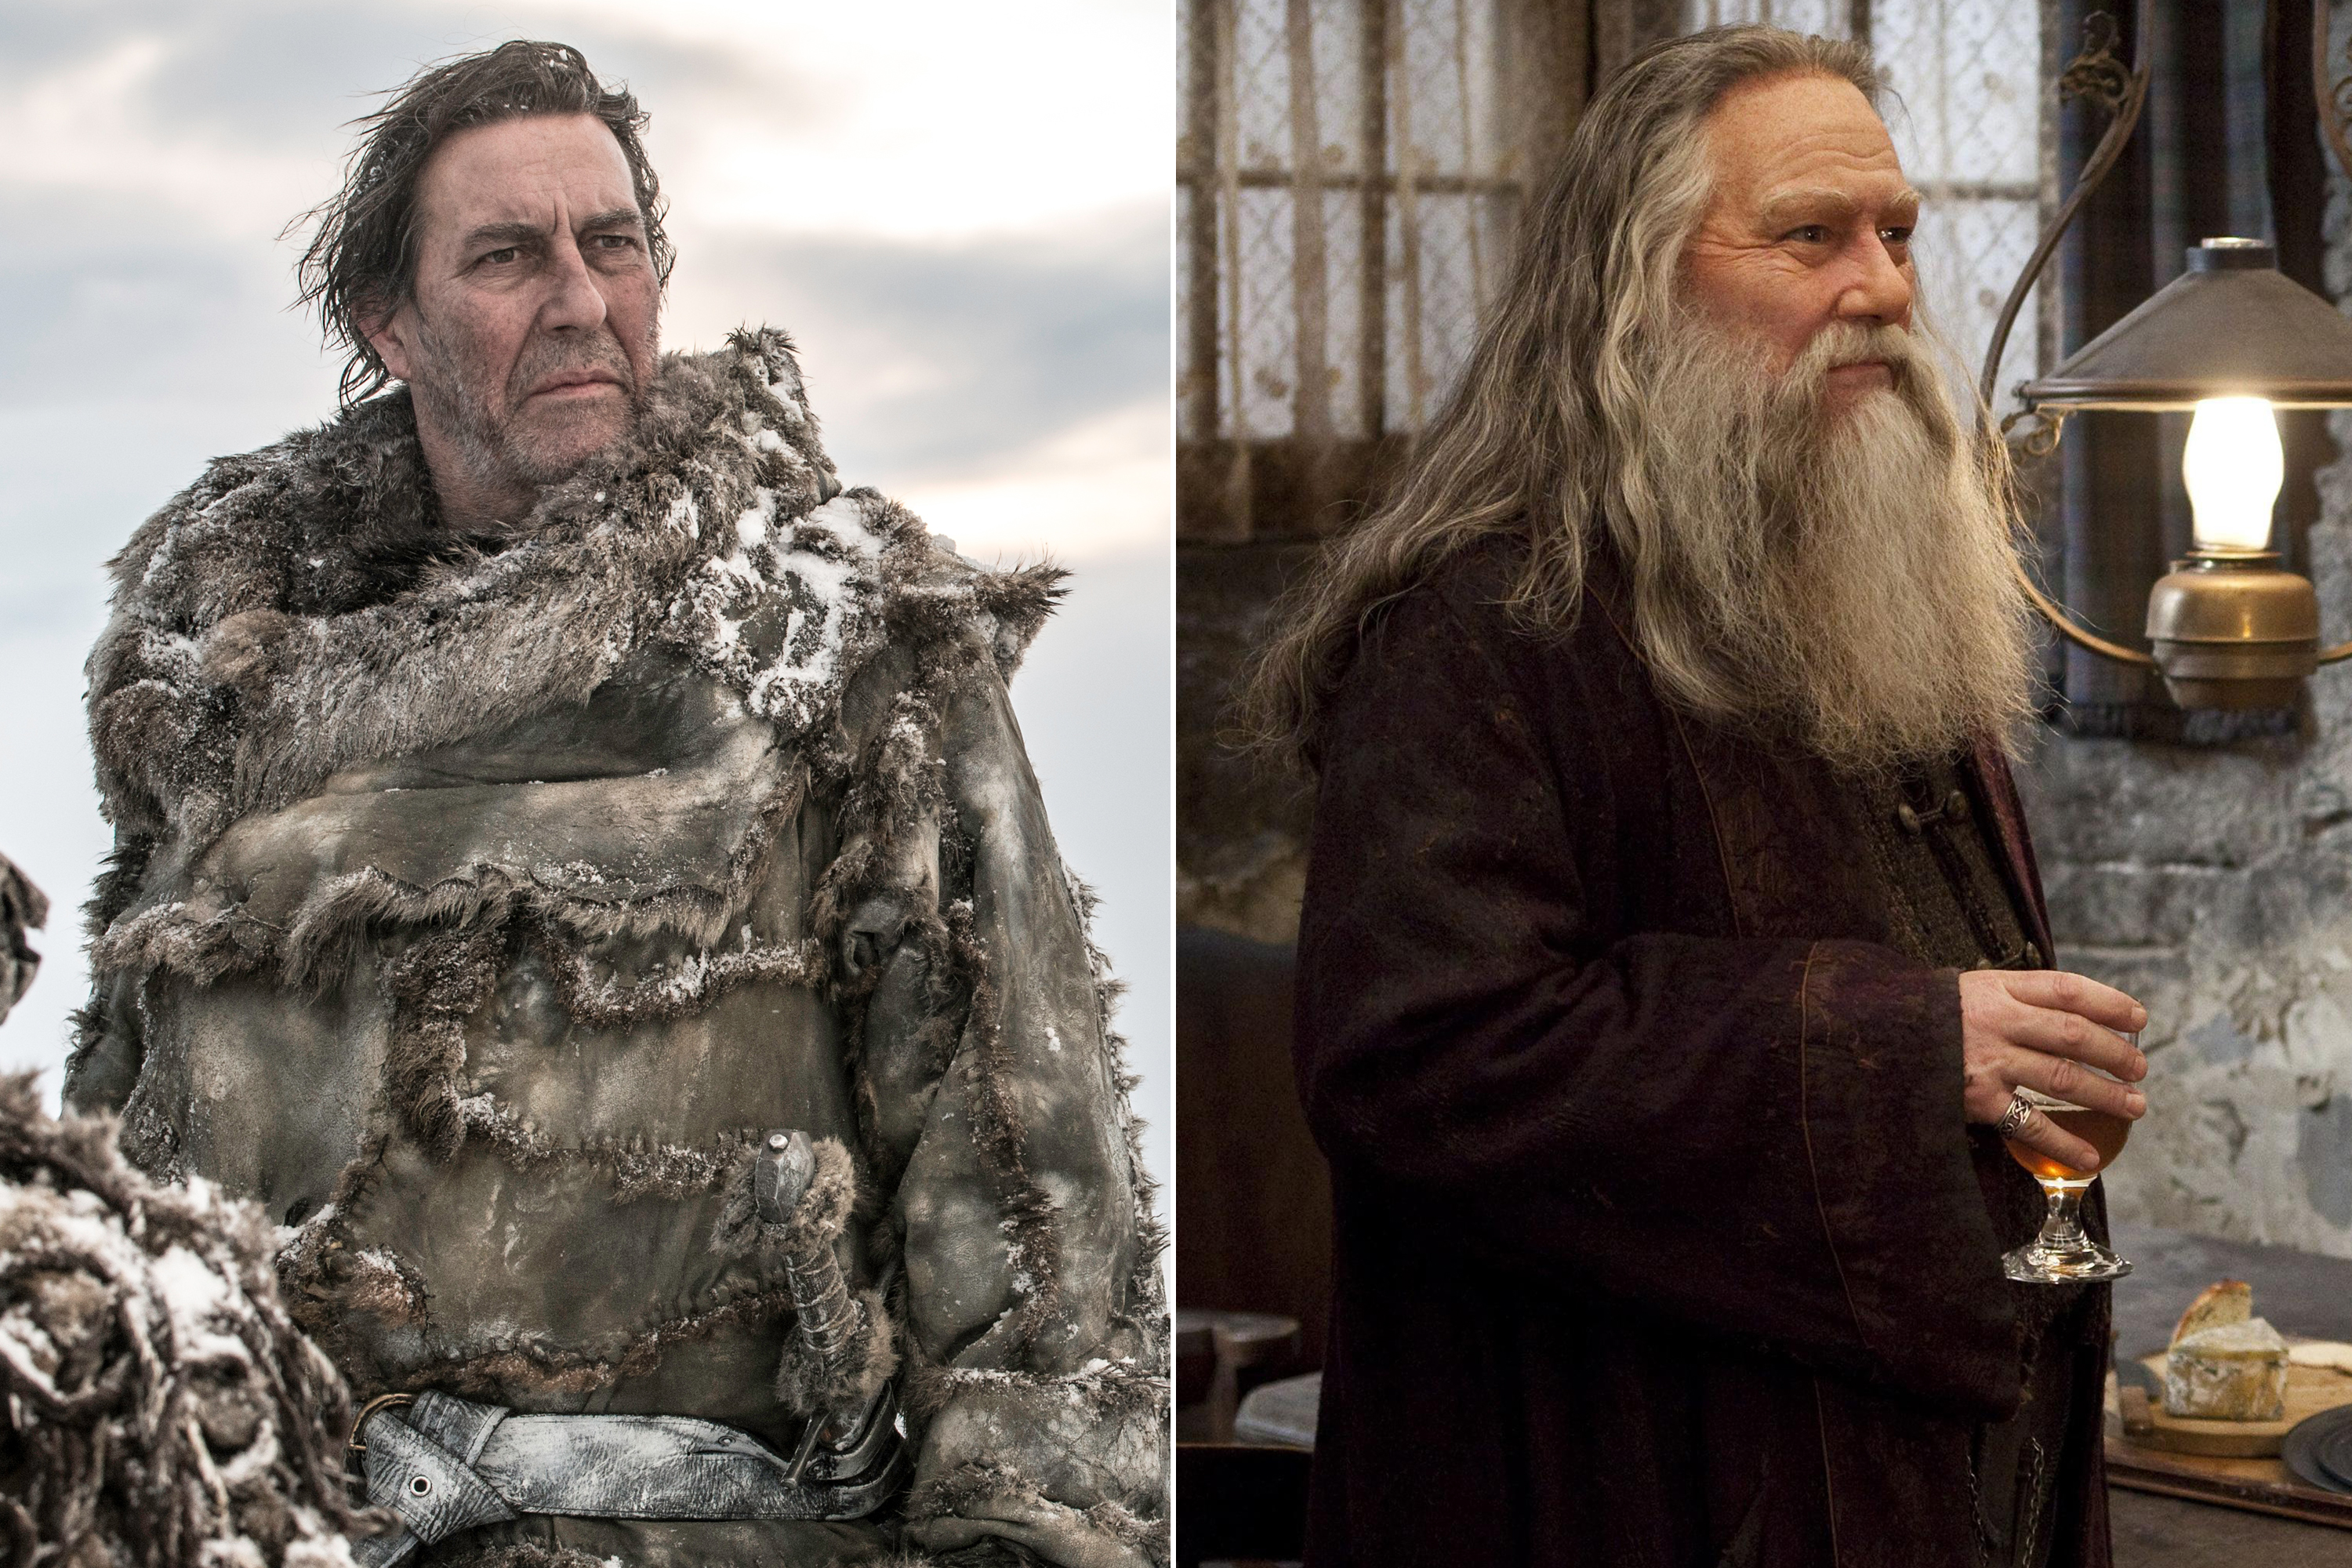 Ciarán Hinds as Mance Rayder and Aberforth Dumbledore